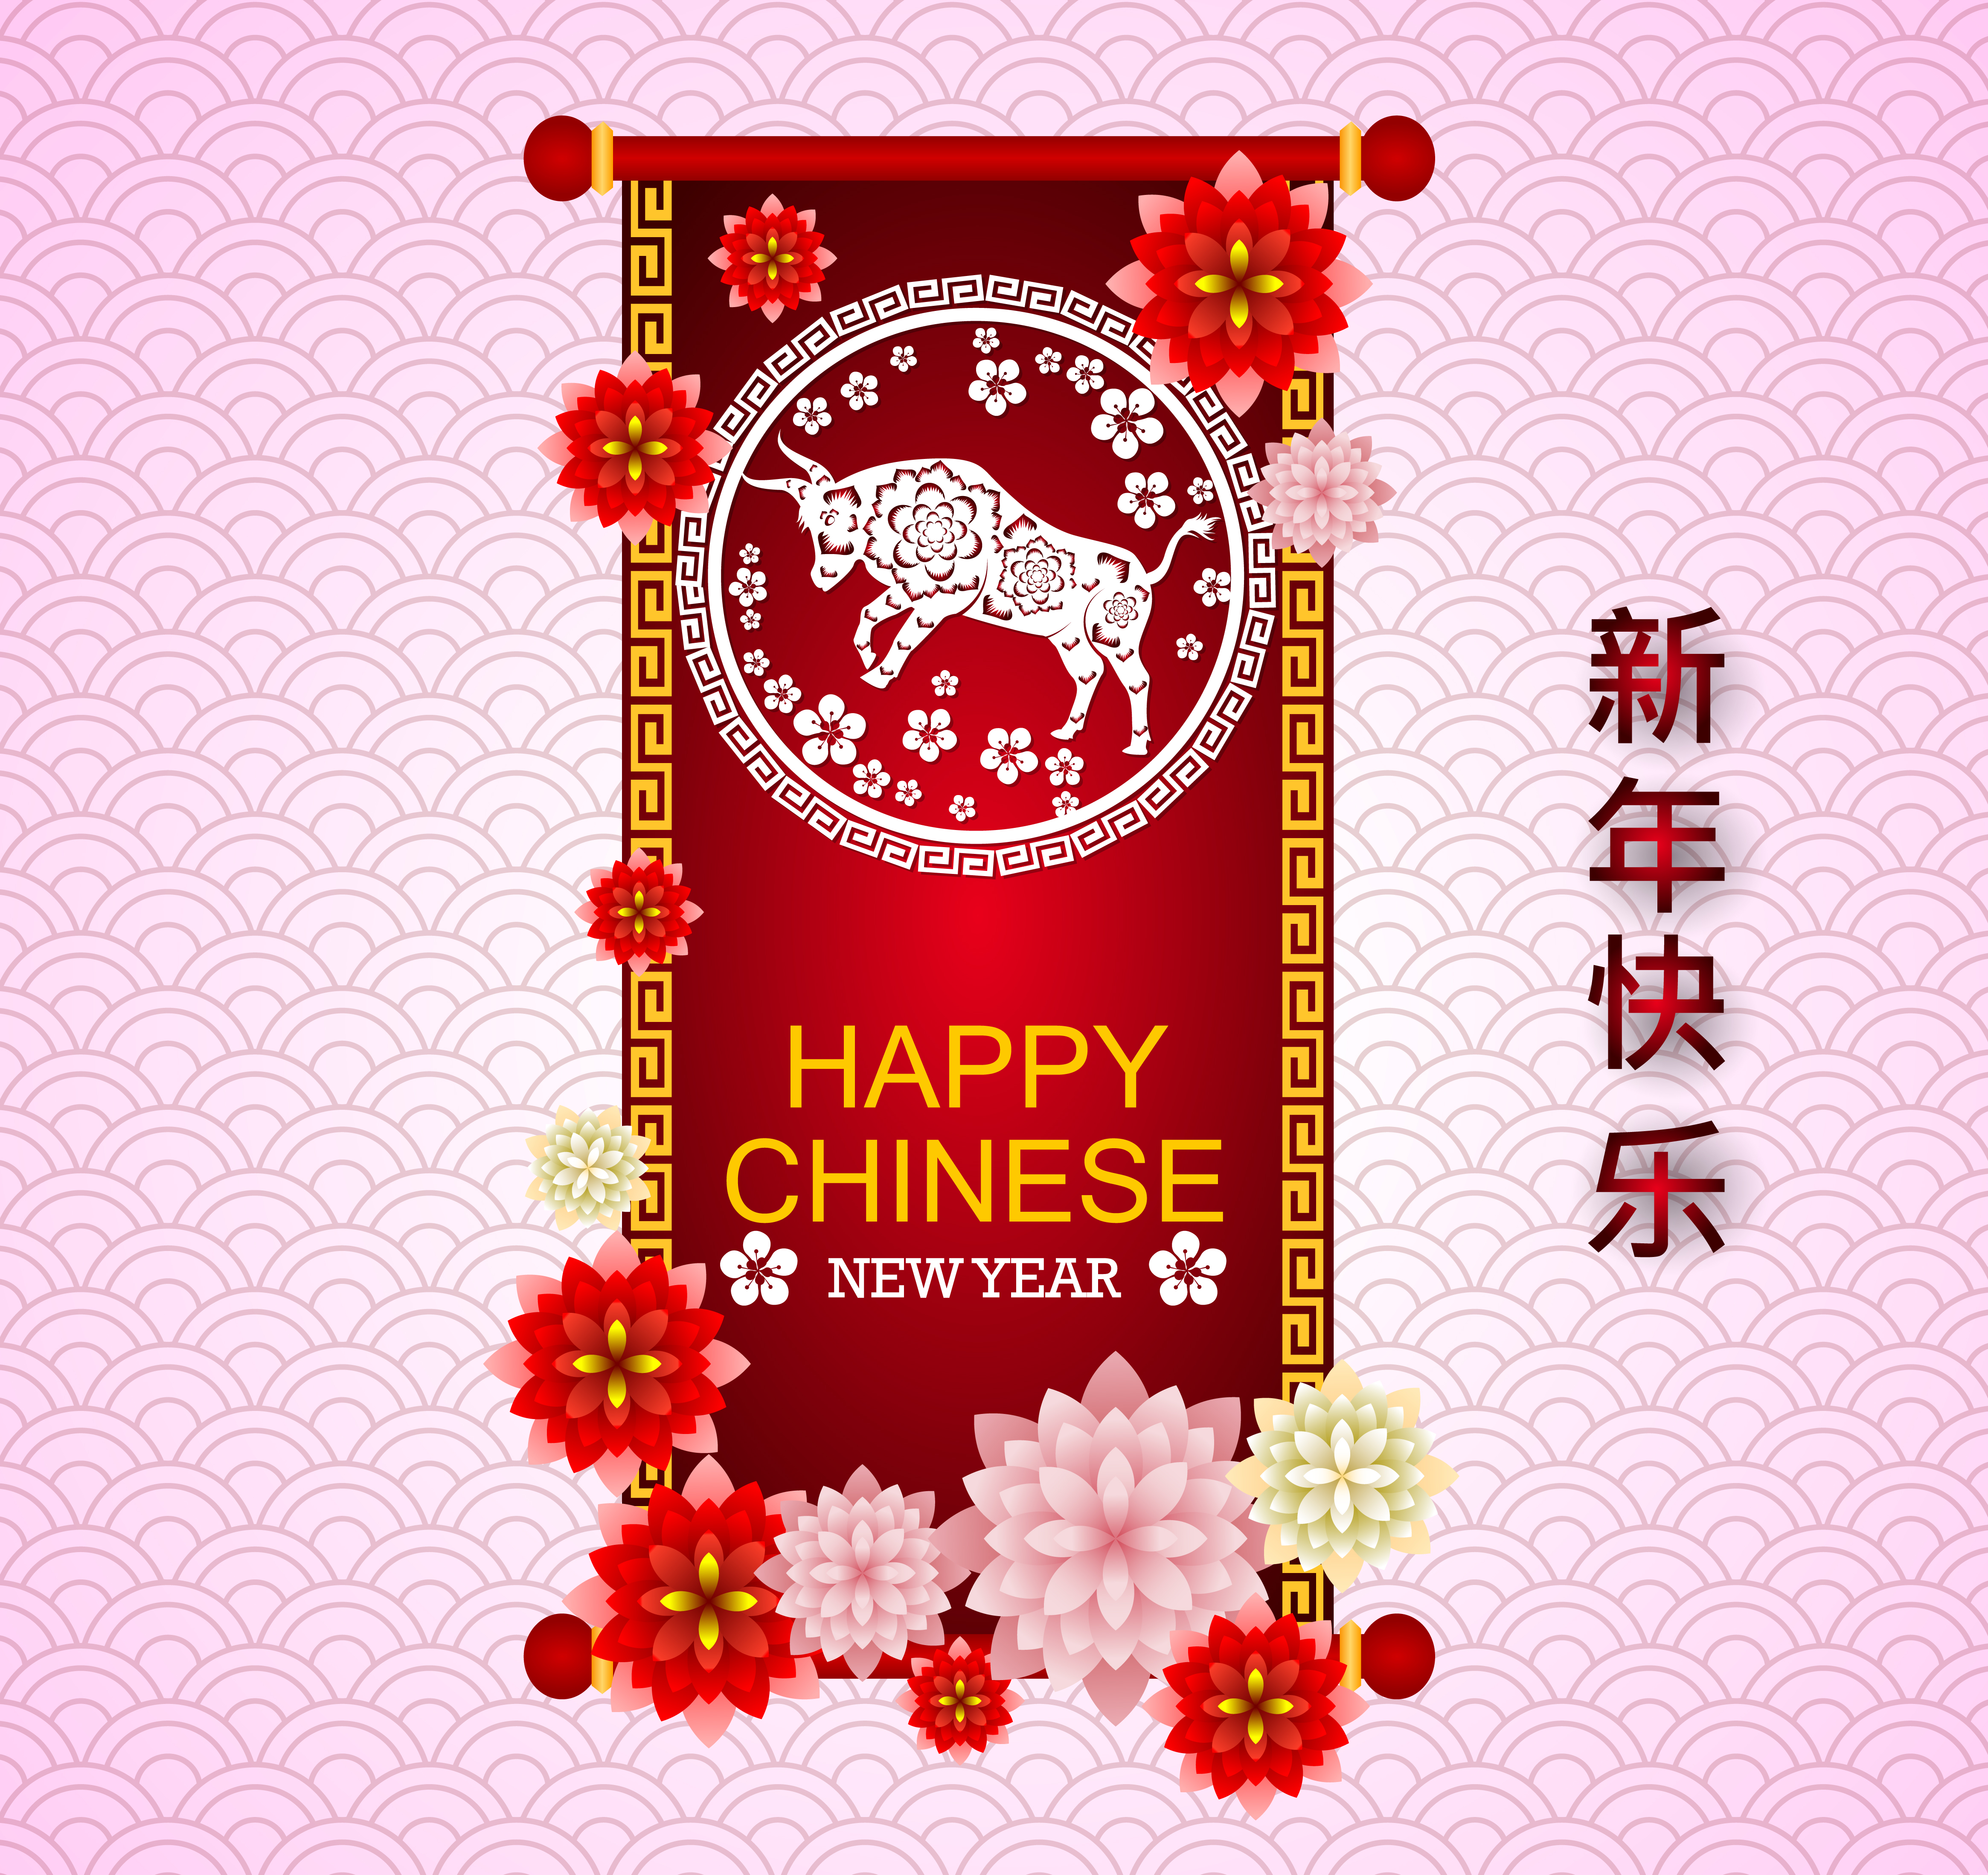 Happy Chinese New Year 2021 - Download Free Vectors ...